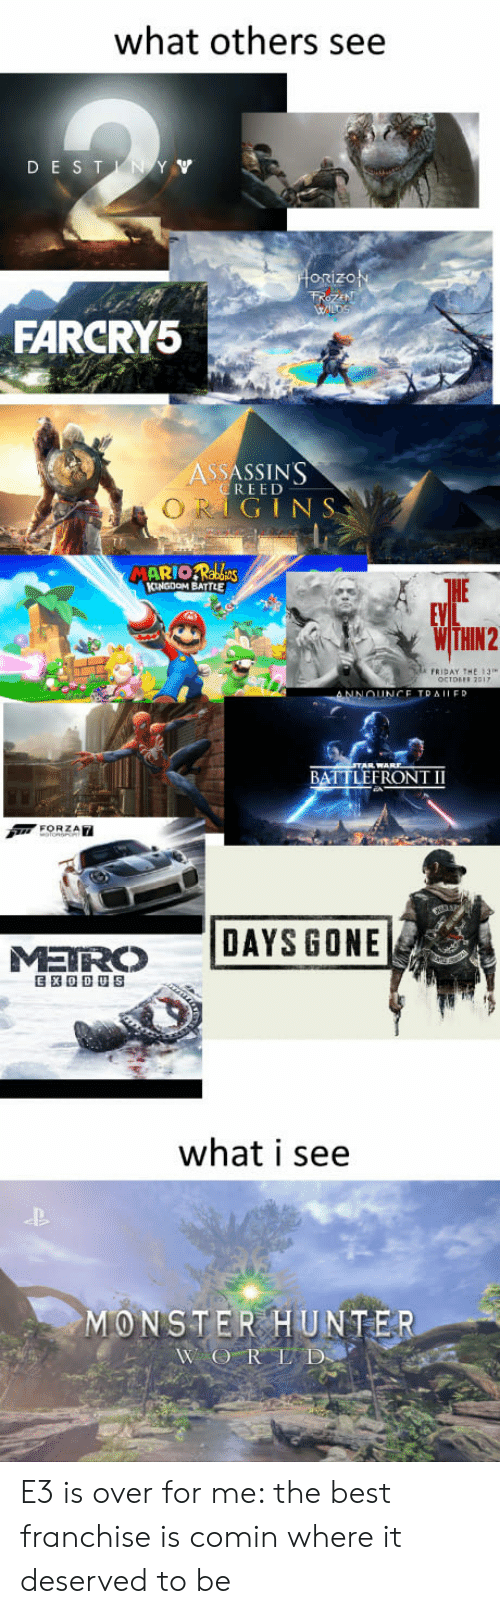 Friday, Monster, and Best: what others see  DE ST  orizo  FARCRY5  ASSASSIN'S  REED  GINS  HE  FRIDAY THE 13  BATTLEFRONT II  MR DAYS GONE  what i see  MONSTER HUNTER E3 is over for me: the best franchise is comin where it deserved to be